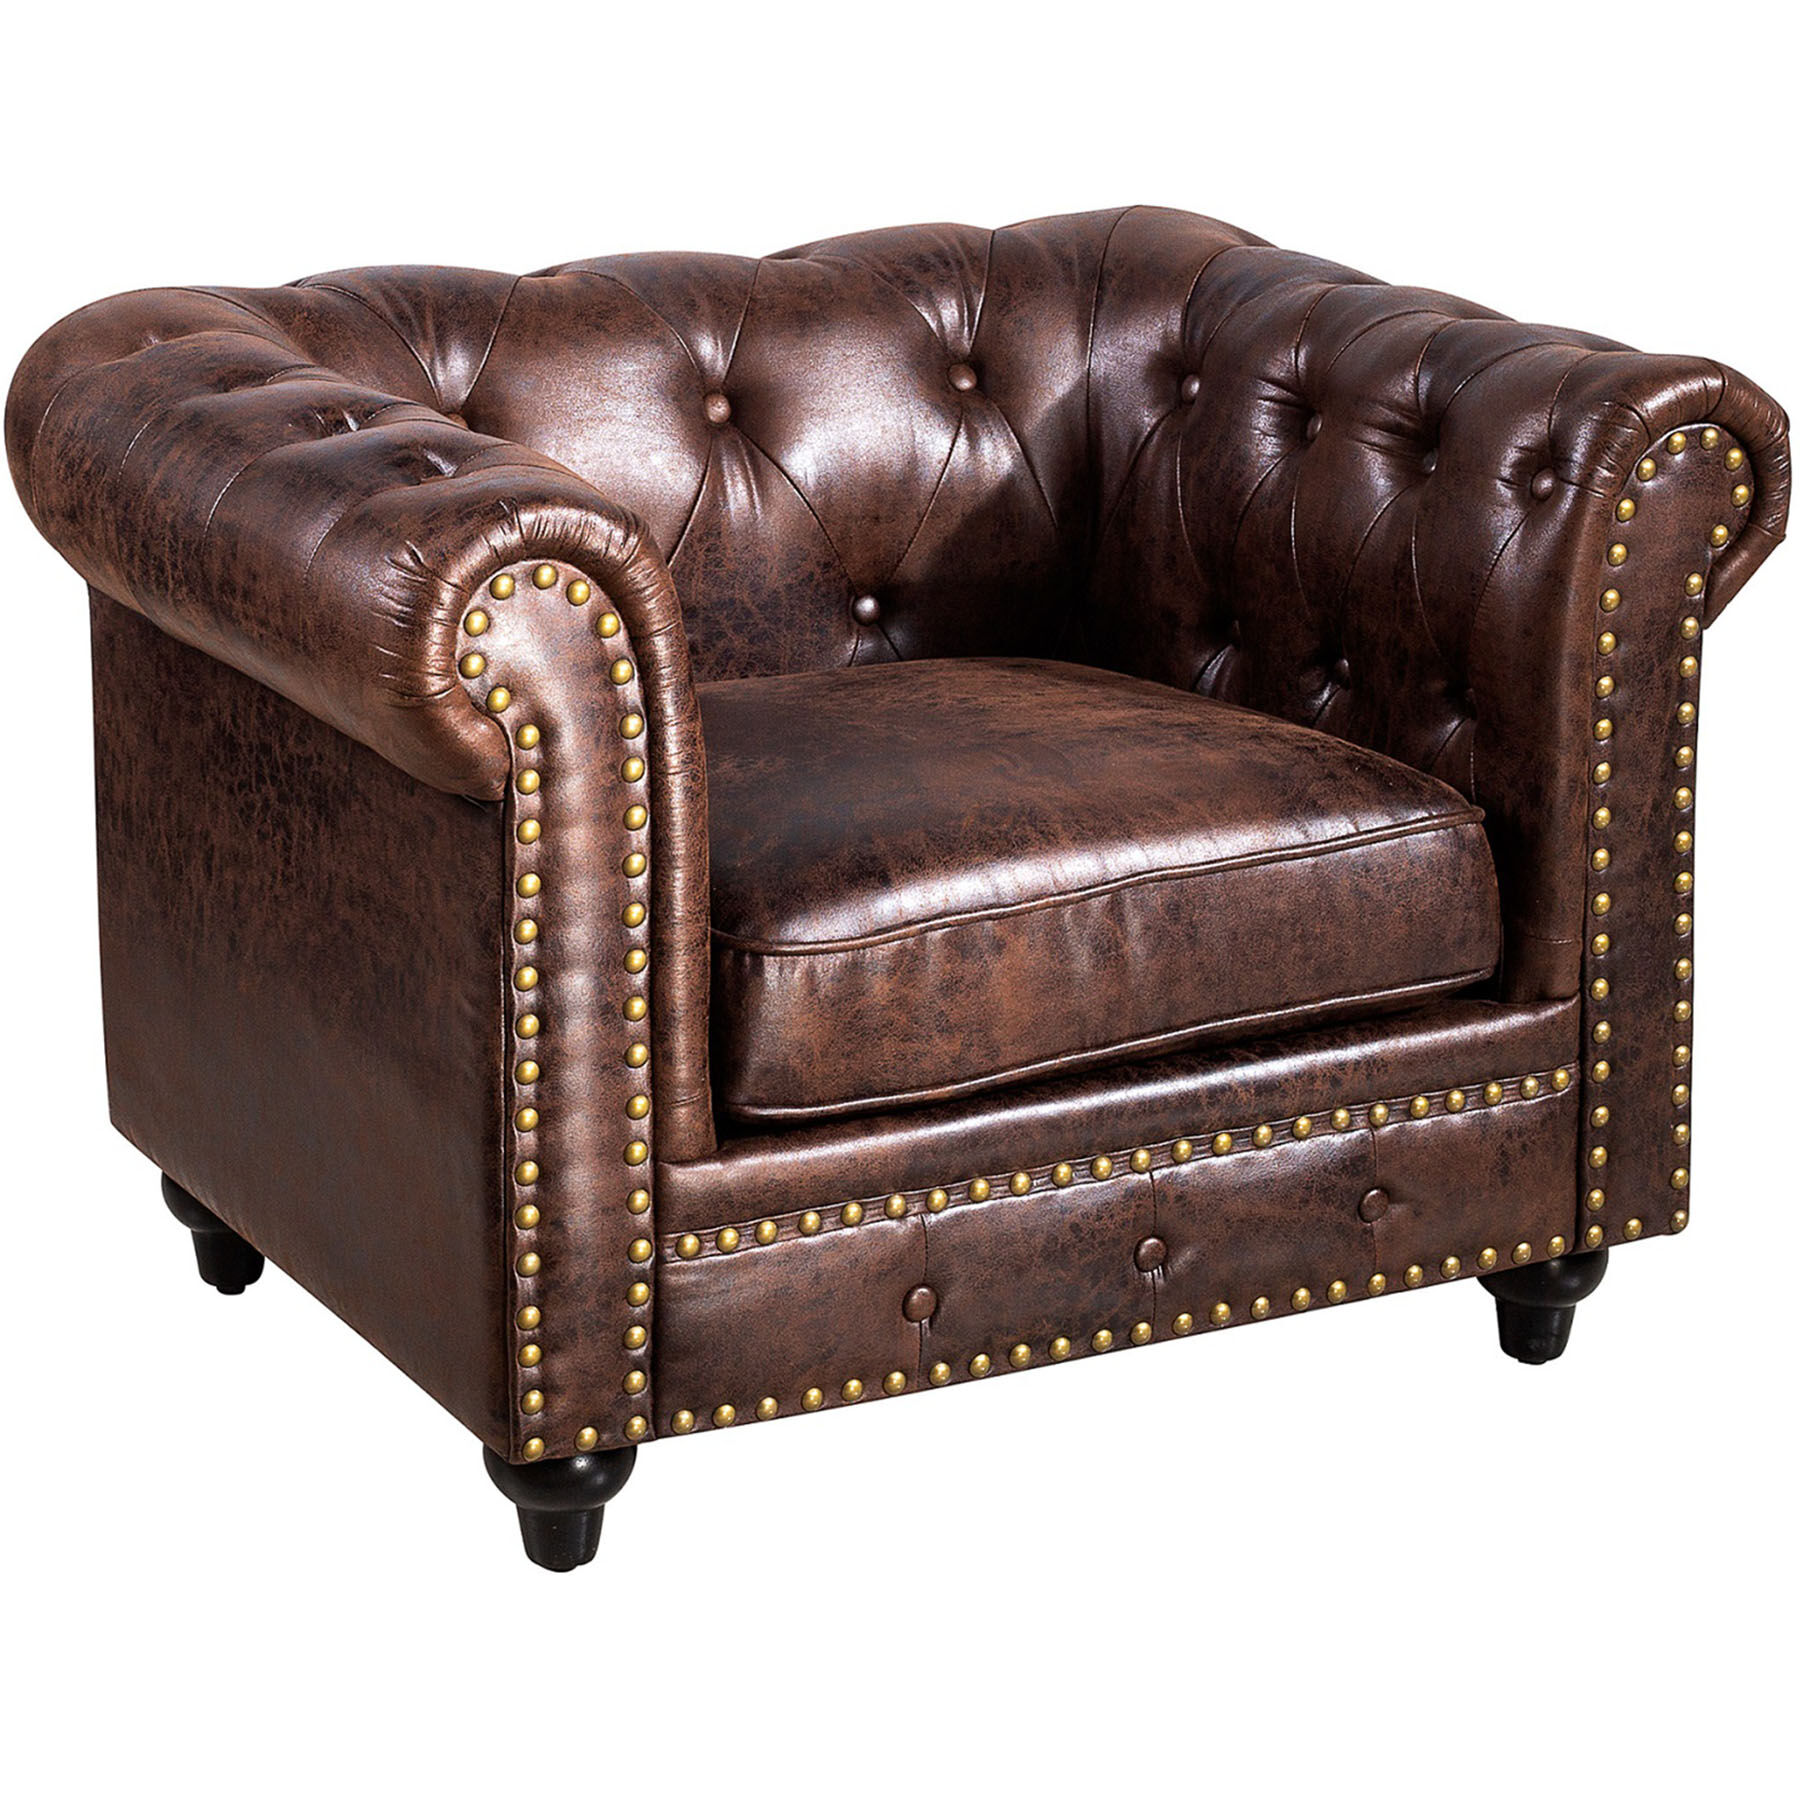 Chesterfield Tufted Chair Brown At Home 4 2 1